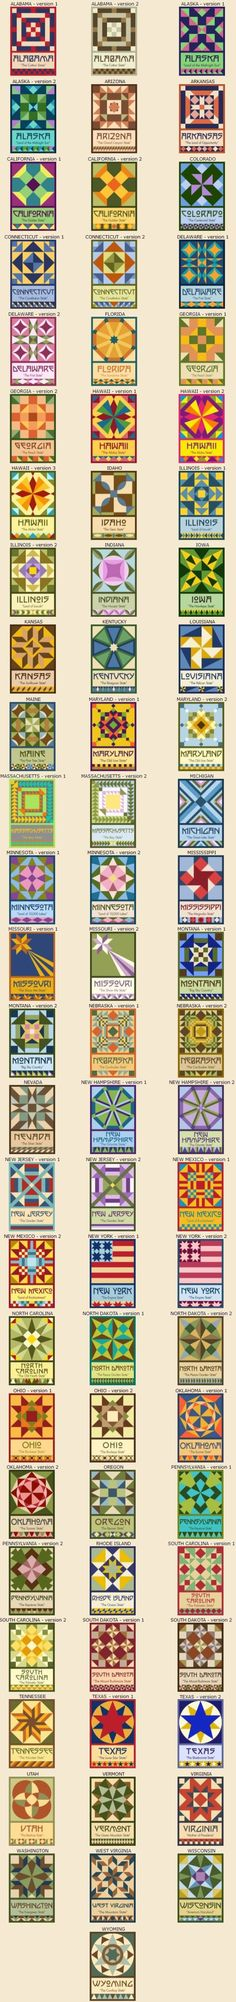 50 State Quilt Block Series by Susan Davis, owner of Olde American Antiques and American Quilt Blocks - House Interior Design Barn Quilt Designs, Barn Quilt Patterns, Pattern Blocks, Quilting Designs, Sewing Patterns, Sampler Quilts, Star Quilts, Quilt Blocks, Scrappy Quilts